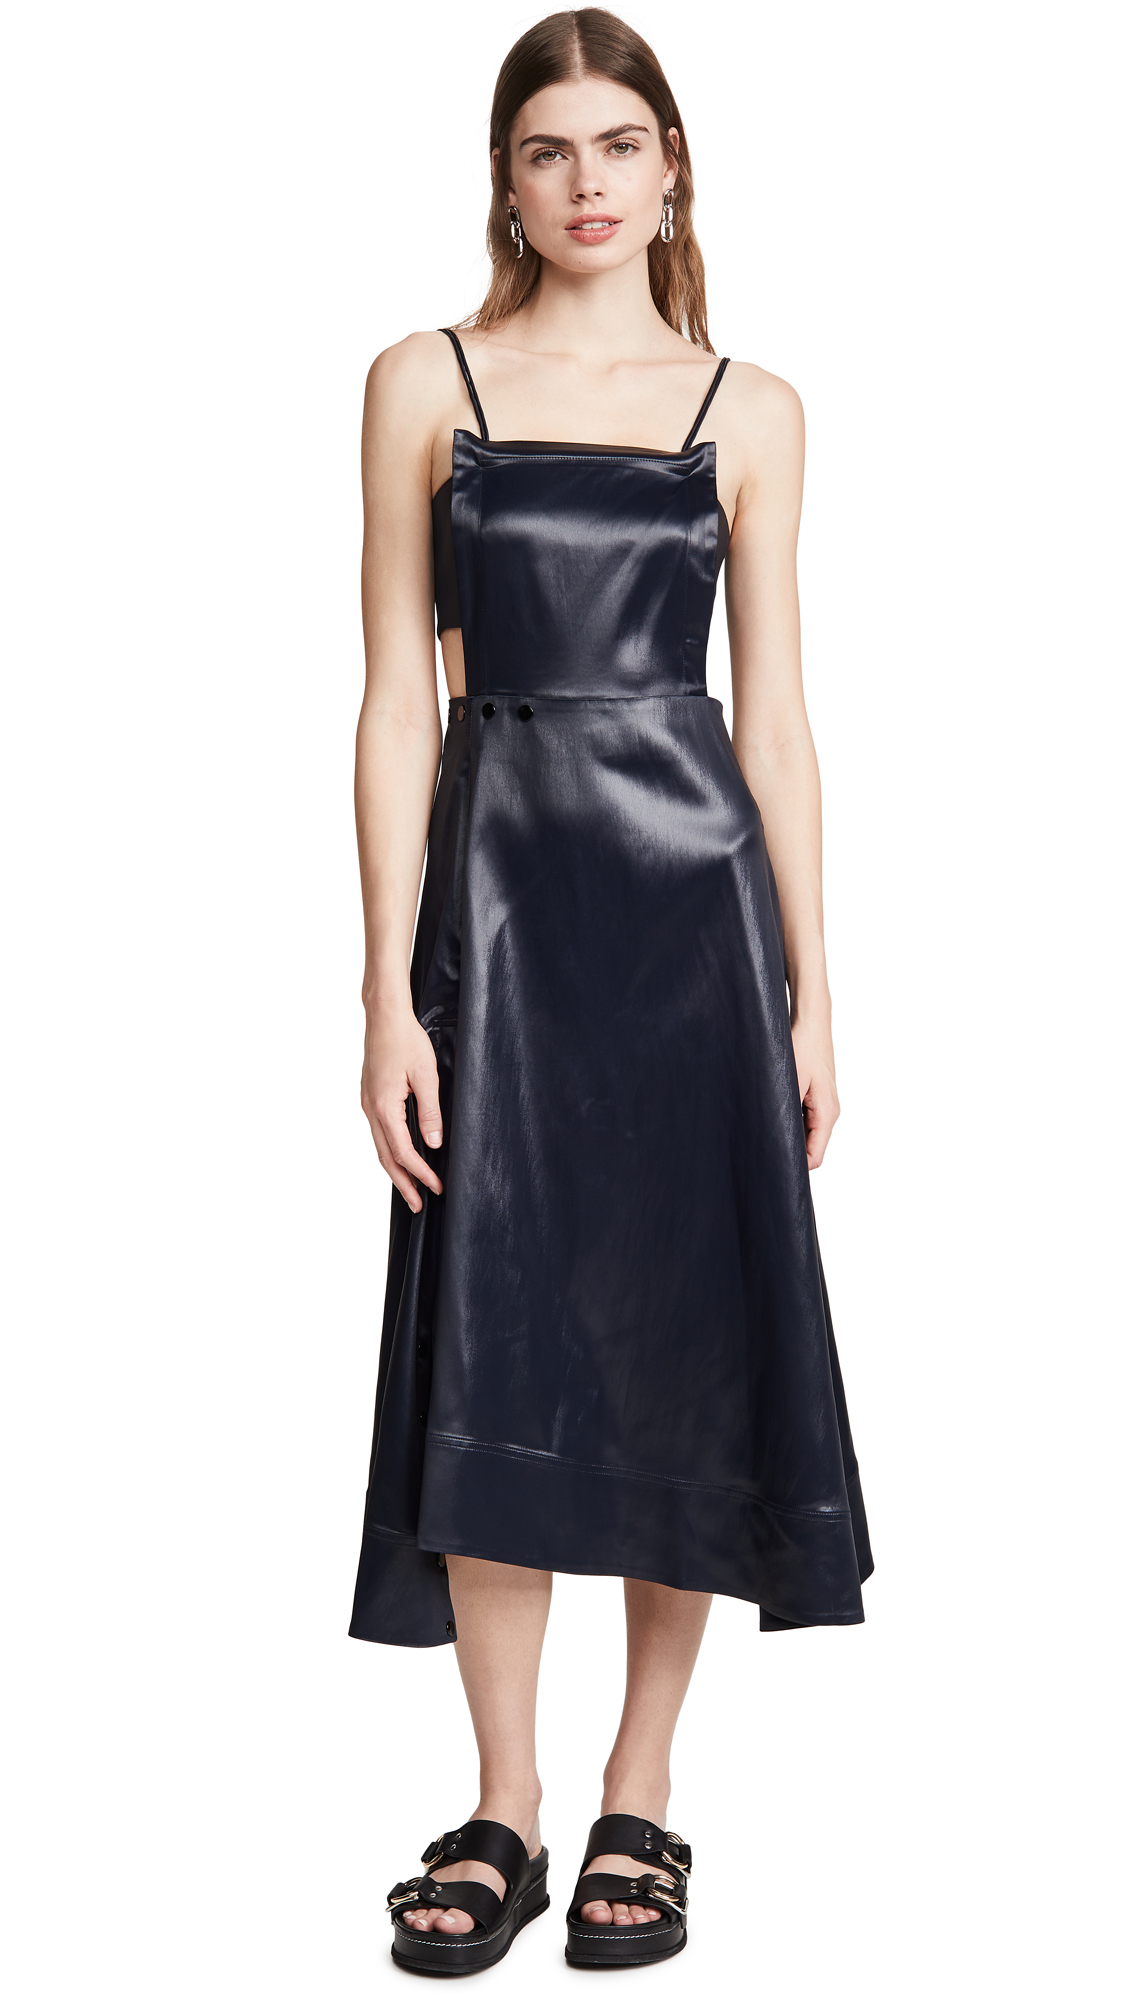 Buy 3.1 Phillip Lim Lacquered Cutout Dress online beautiful 3.1 Phillip Lim Clothing, Dresses